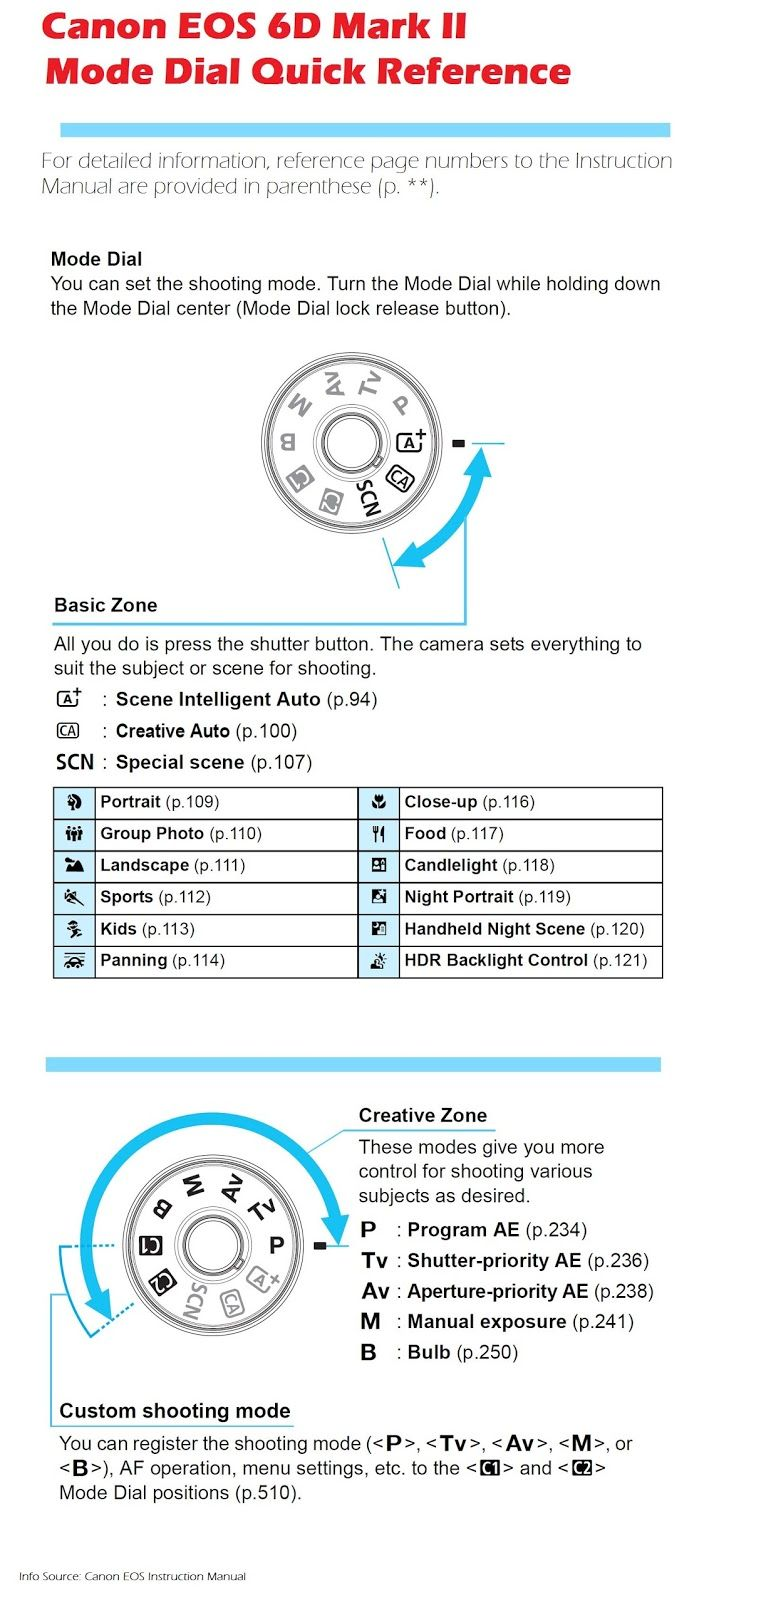 medium resolution of canon eos 6d mark ii camera mode dial quick reference there s more of these useful resources just click on the image and check out the site